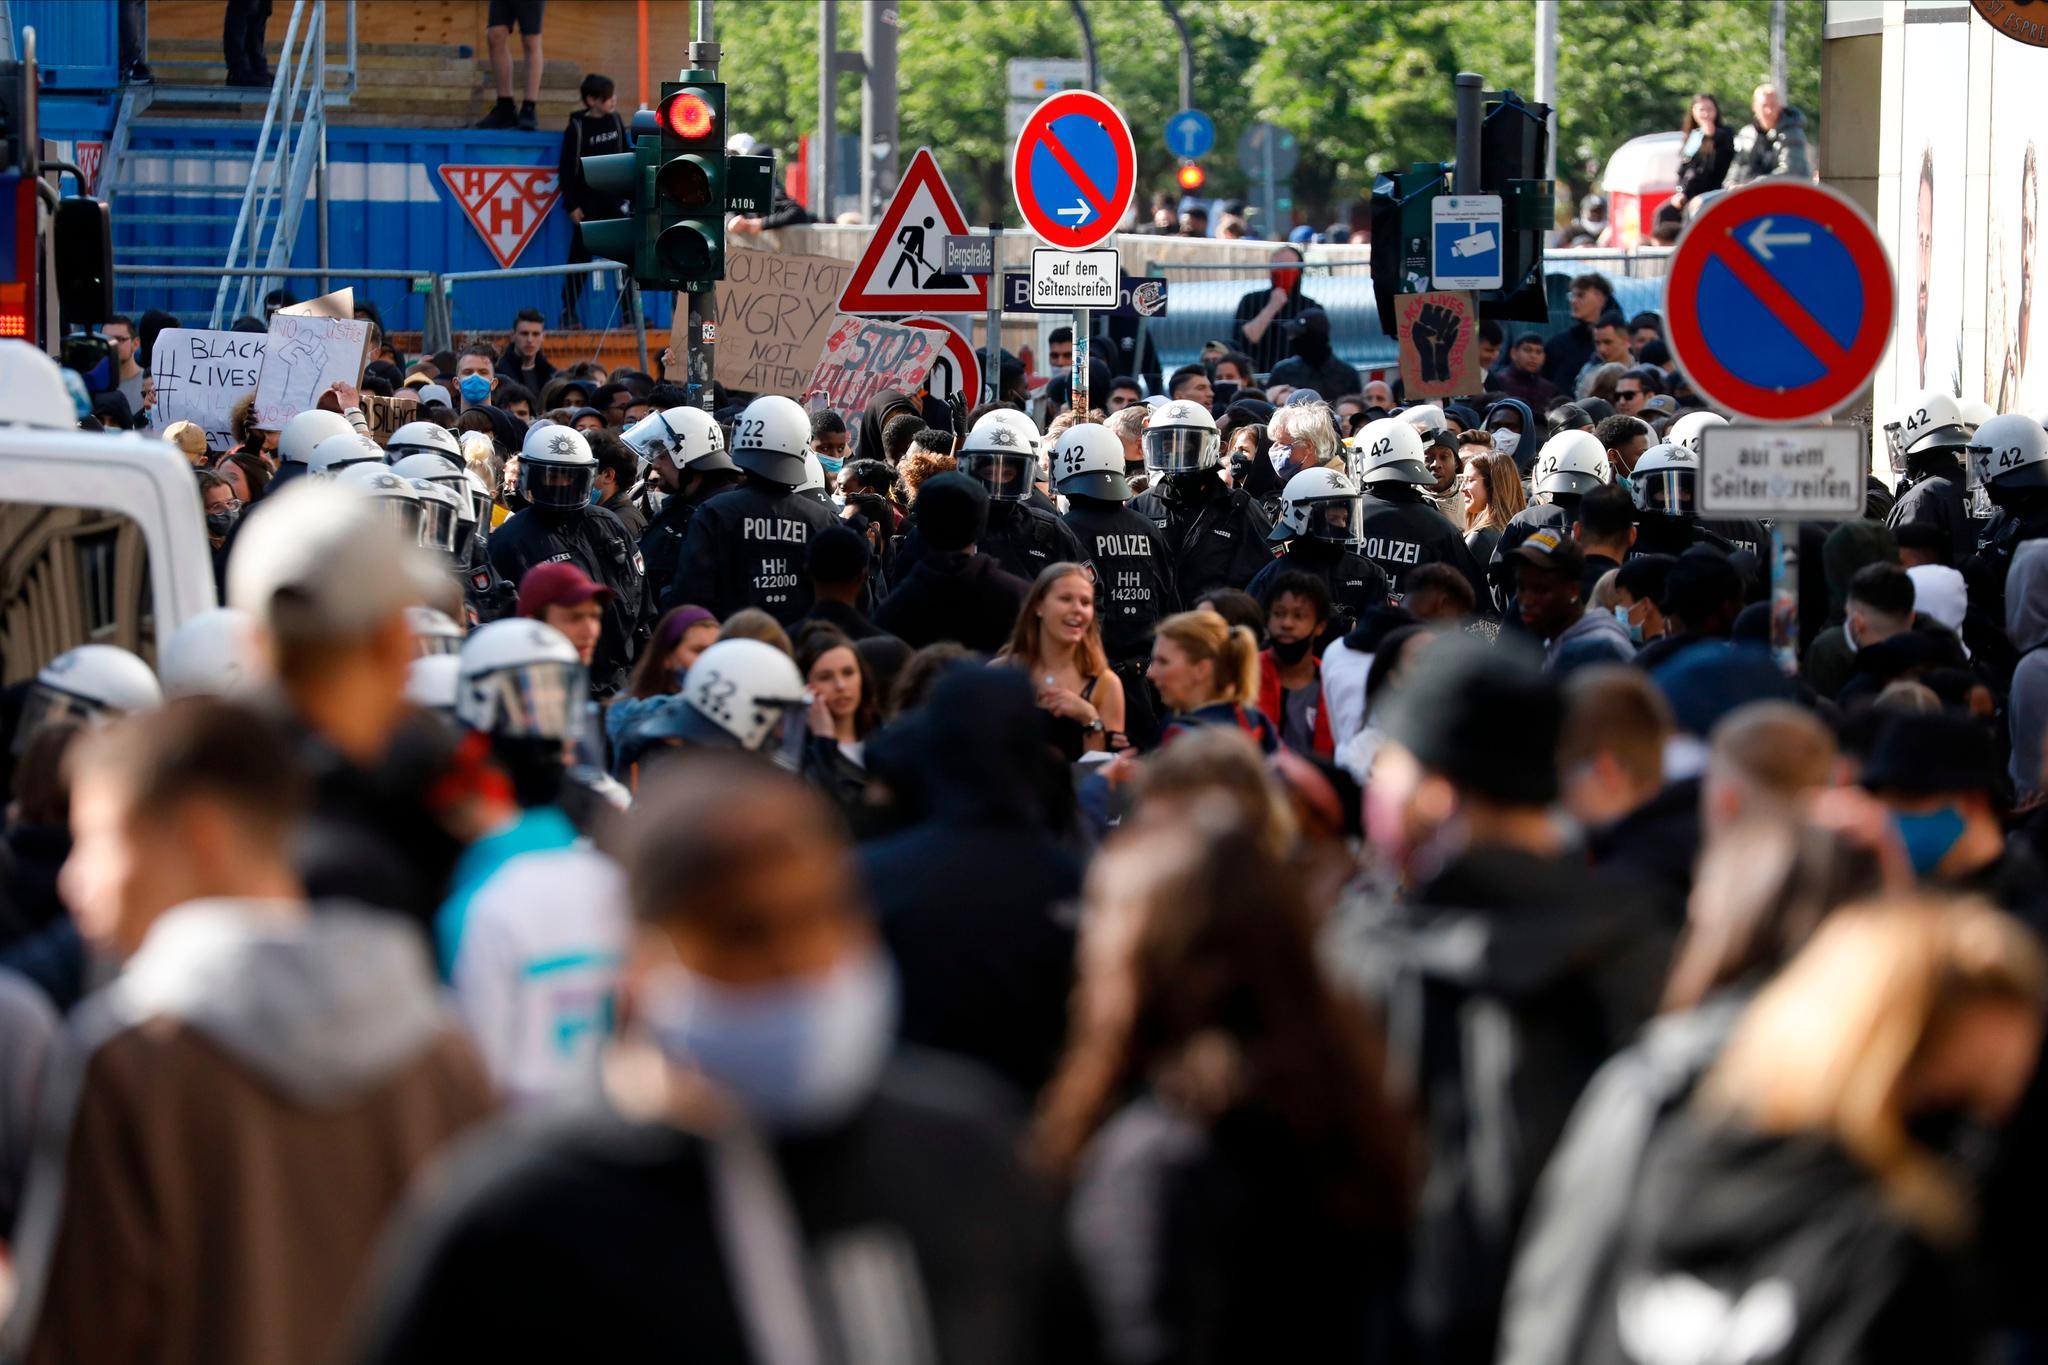 <p>Police stands guard during a BLM protest on June 6 in Hamburg</p>AFP via Getty Images